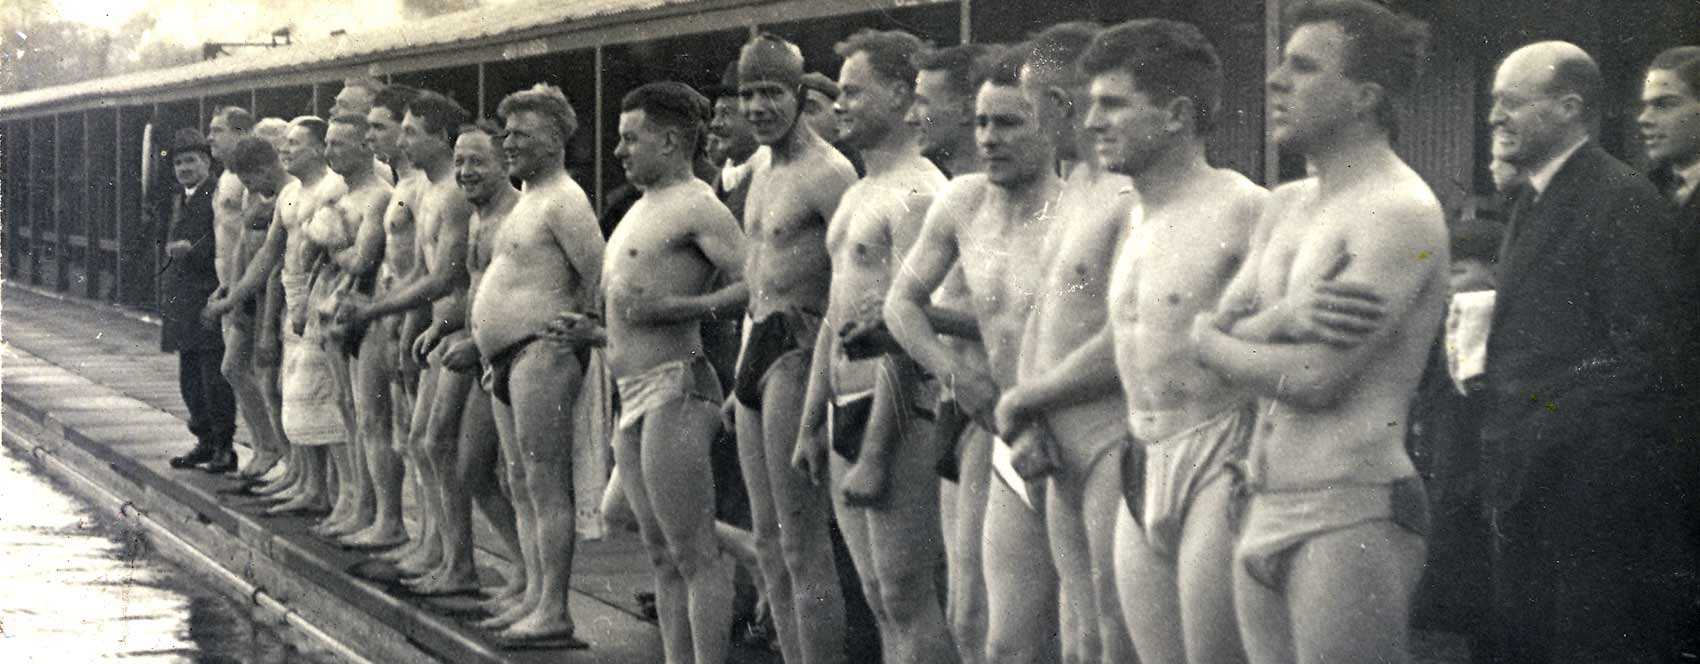 Competitors line up for the Christmas Day swim 1929.